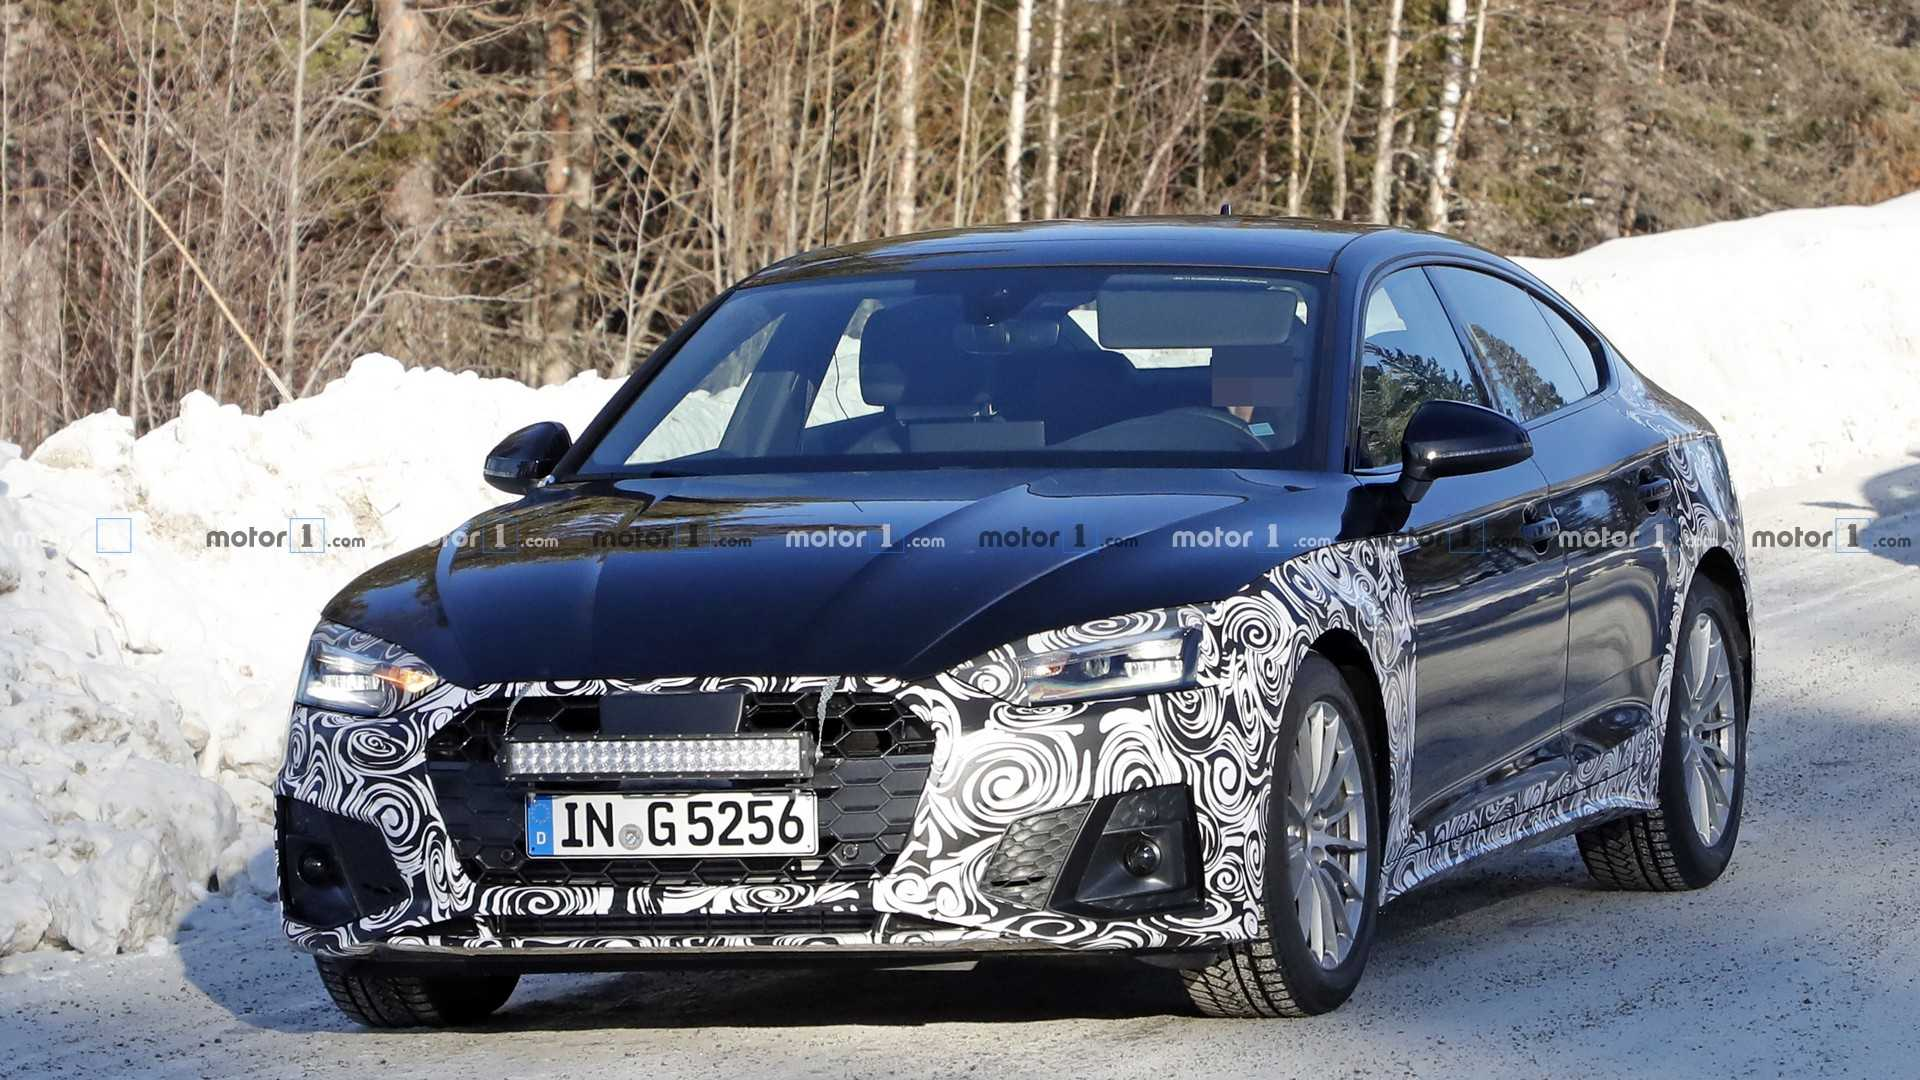 83 The Best 2020 Audi A5 Coupe Release Date